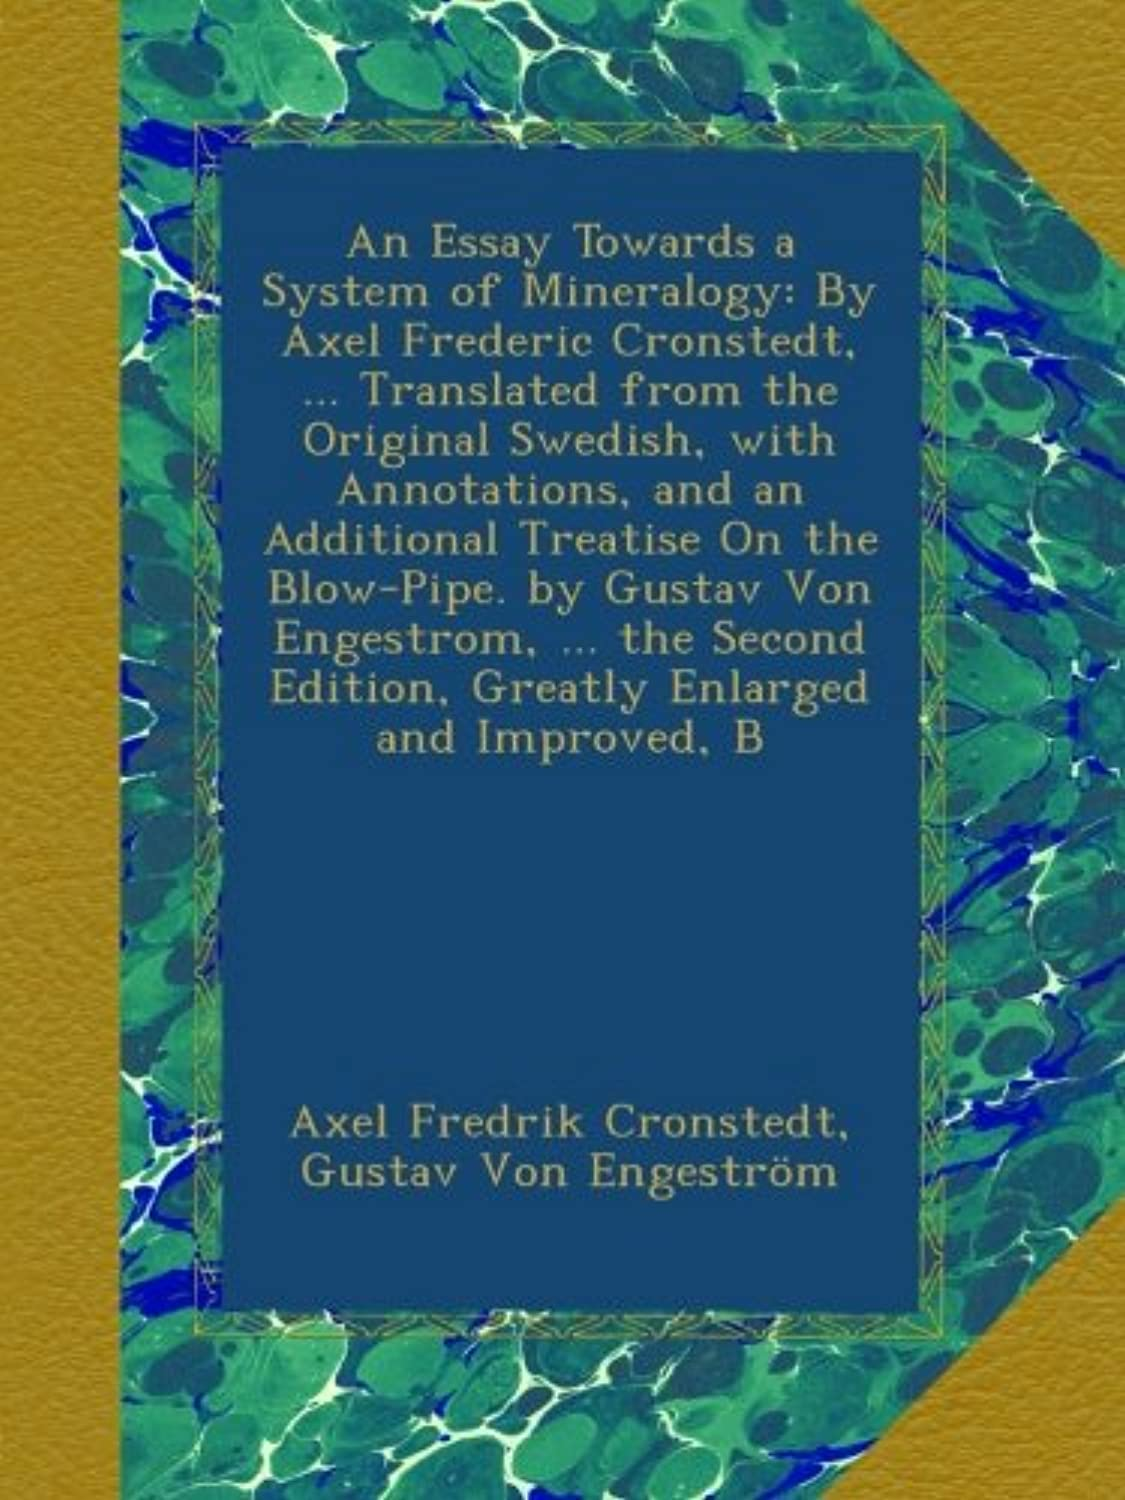 An Essay Towards a System of Mineralogy: By Axel Frederic Cronstedt, ... Translated from the Original Swedish, with Annotations, and an Additional Treatise On the Blow-Pipe. by Gustav Von Engestrom, ... the Second Edition, Greatly Enlarged and Improved, B